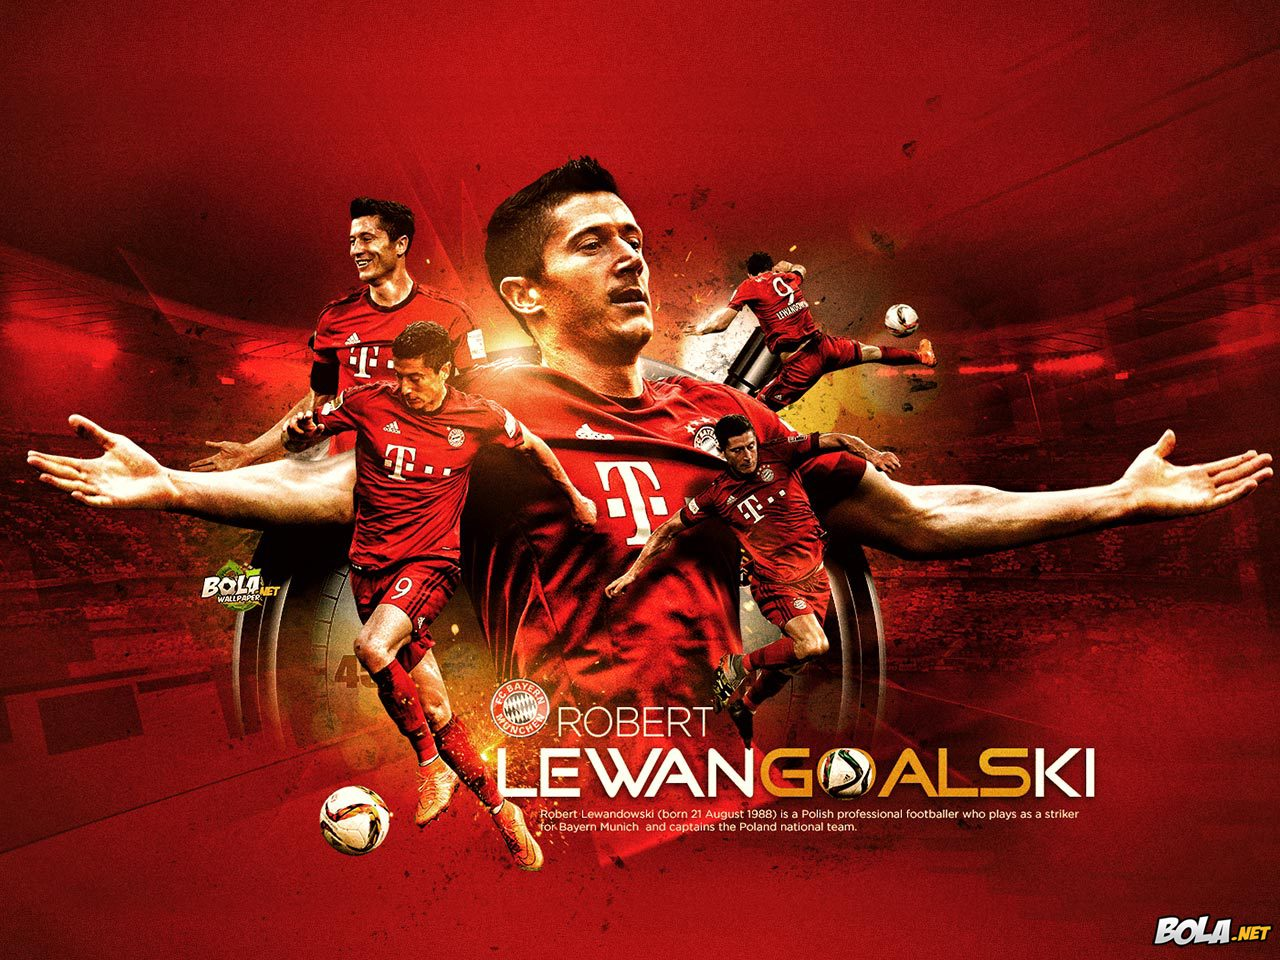 Free Download Wallpaper Robert Lewandowski Bolanet